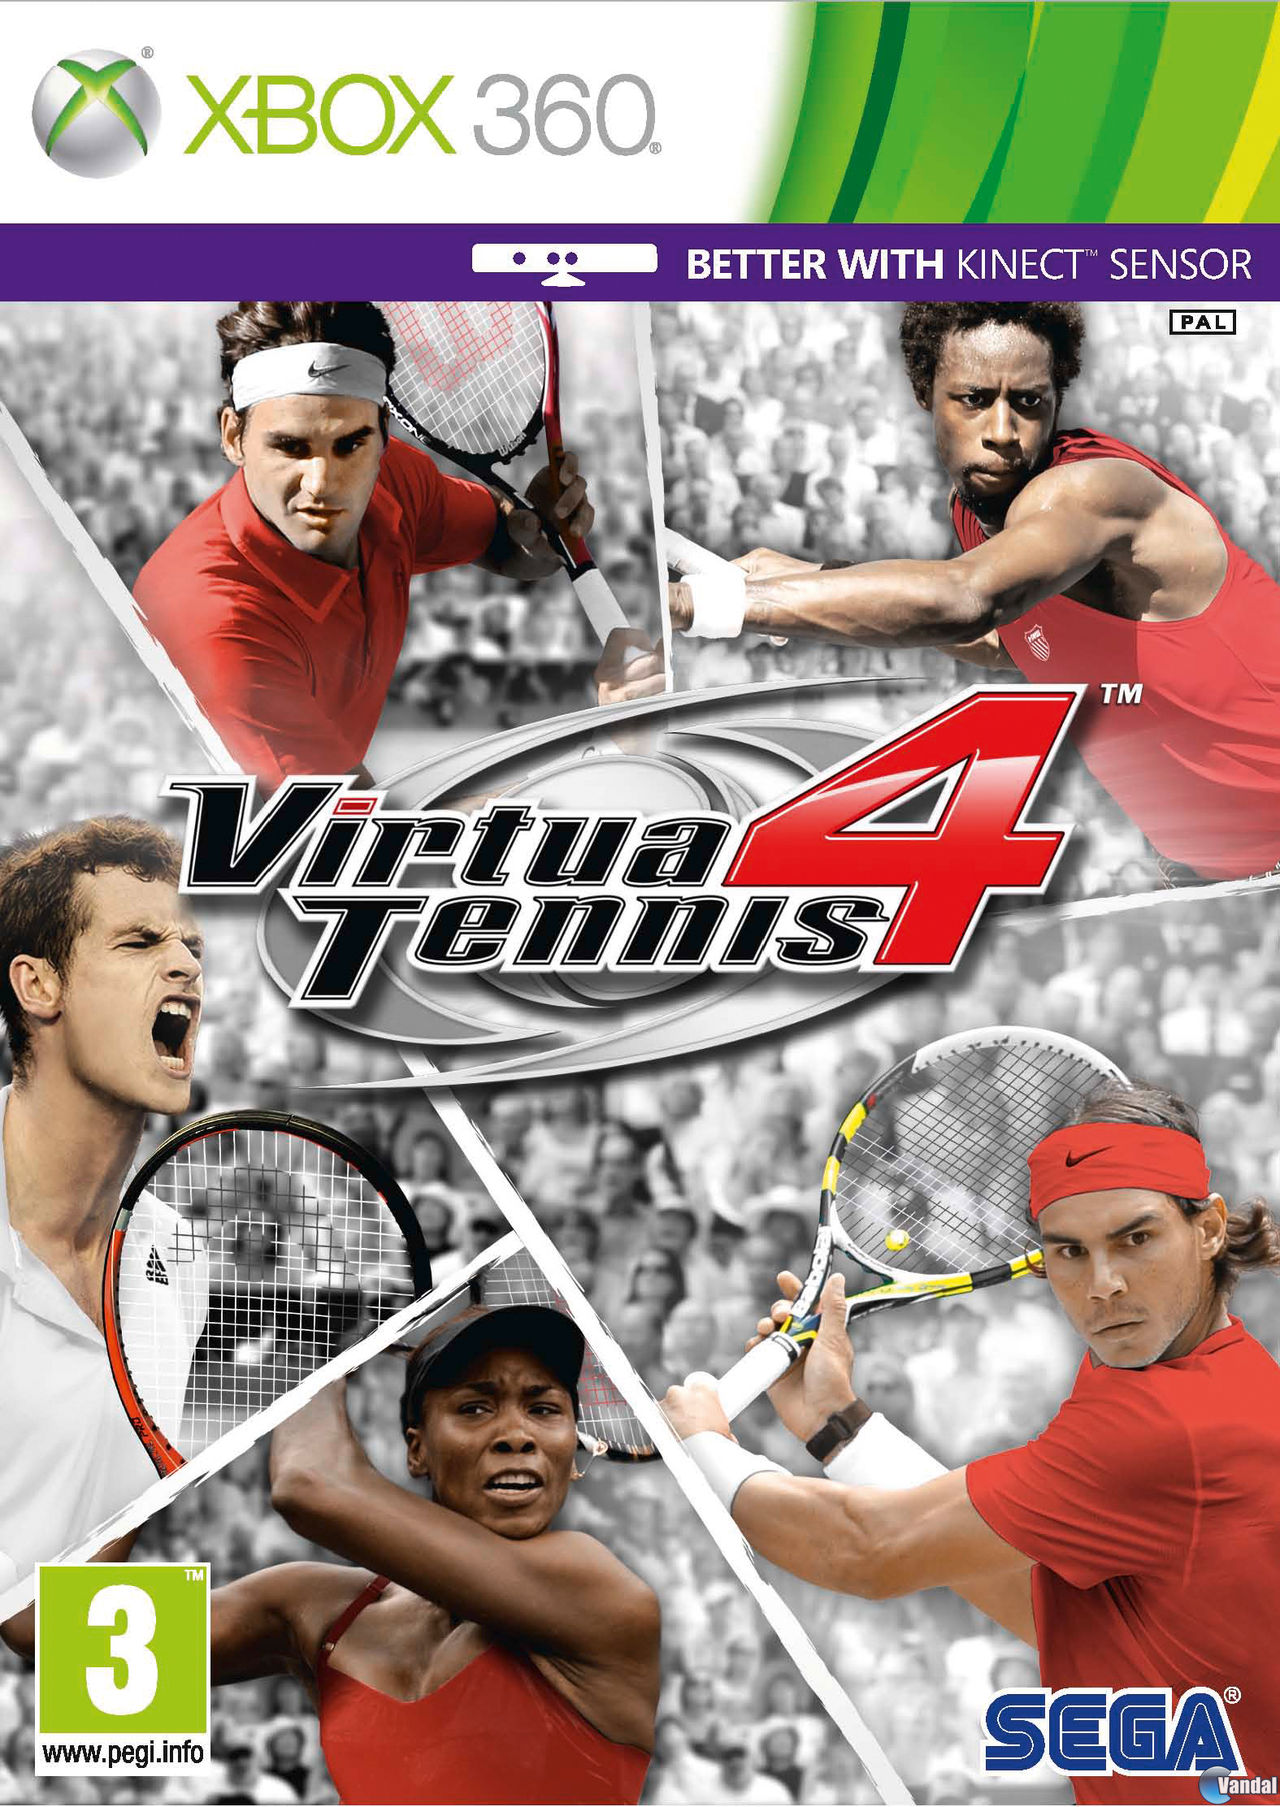 Descarga Virtua Tennis 4 xbox 360